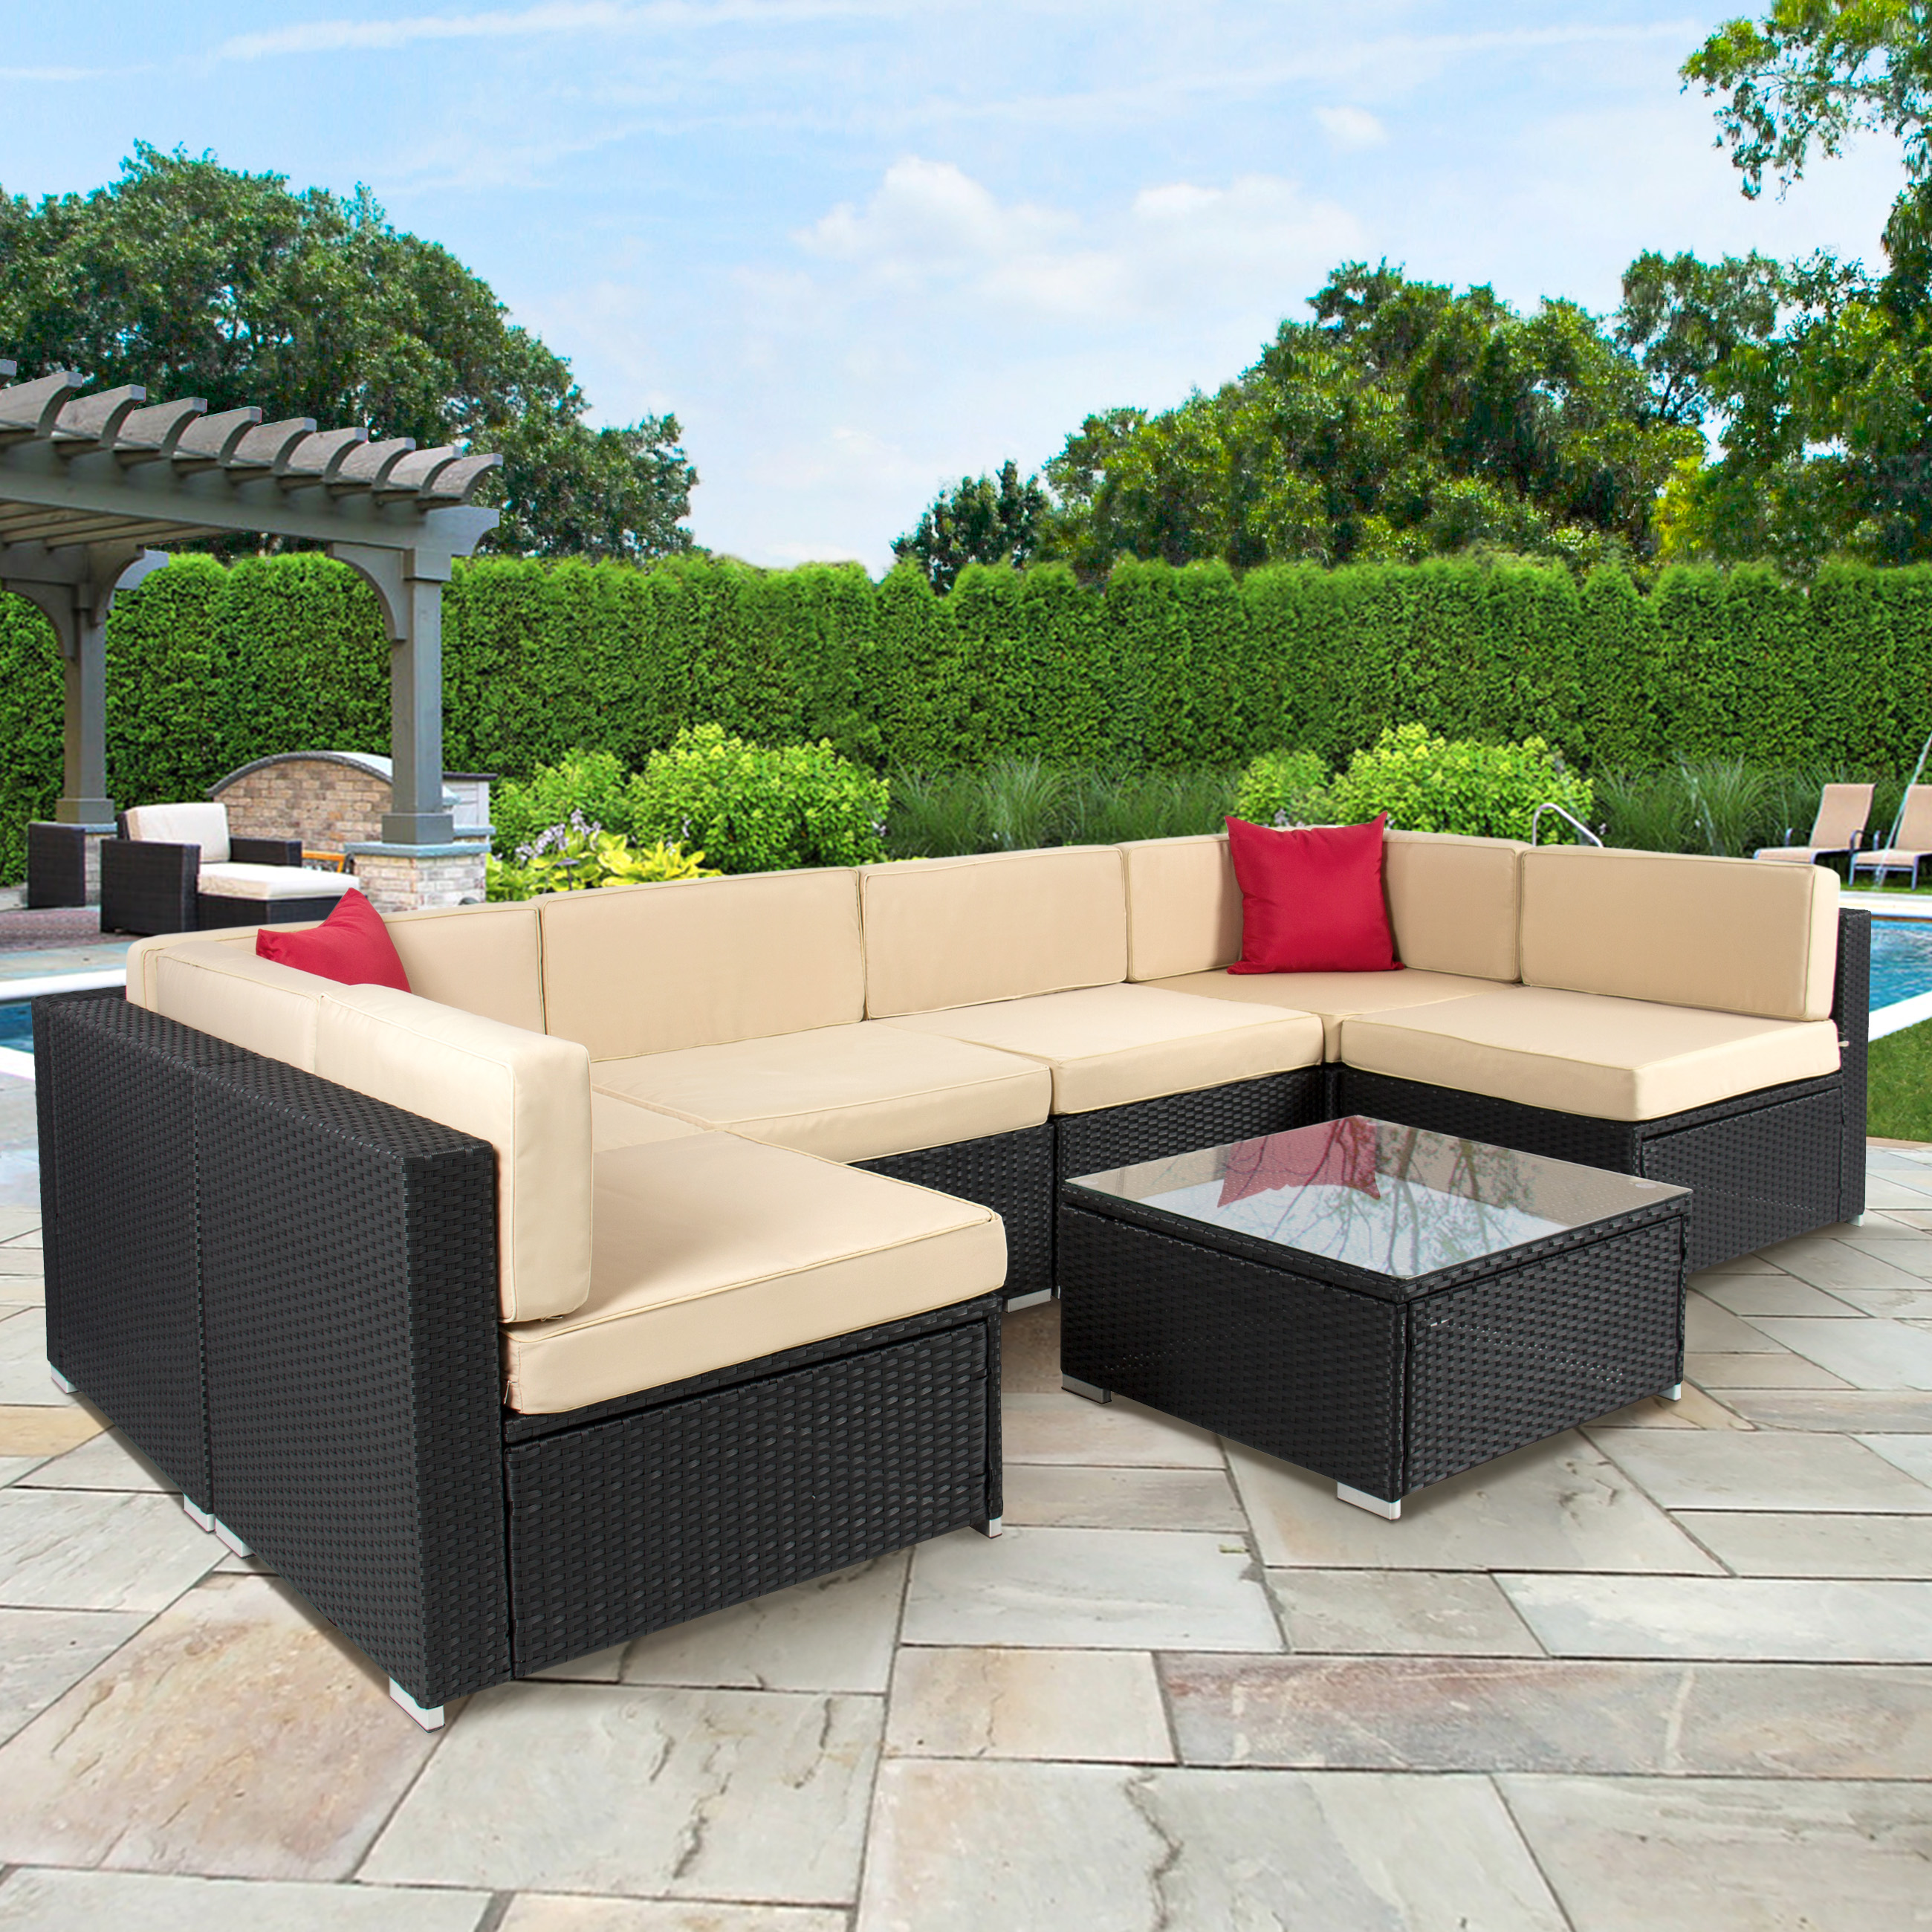 outdoor wicker furniture 4pc outdoor patio garden furniture wicker rattan sofa set black - TJPMZNO